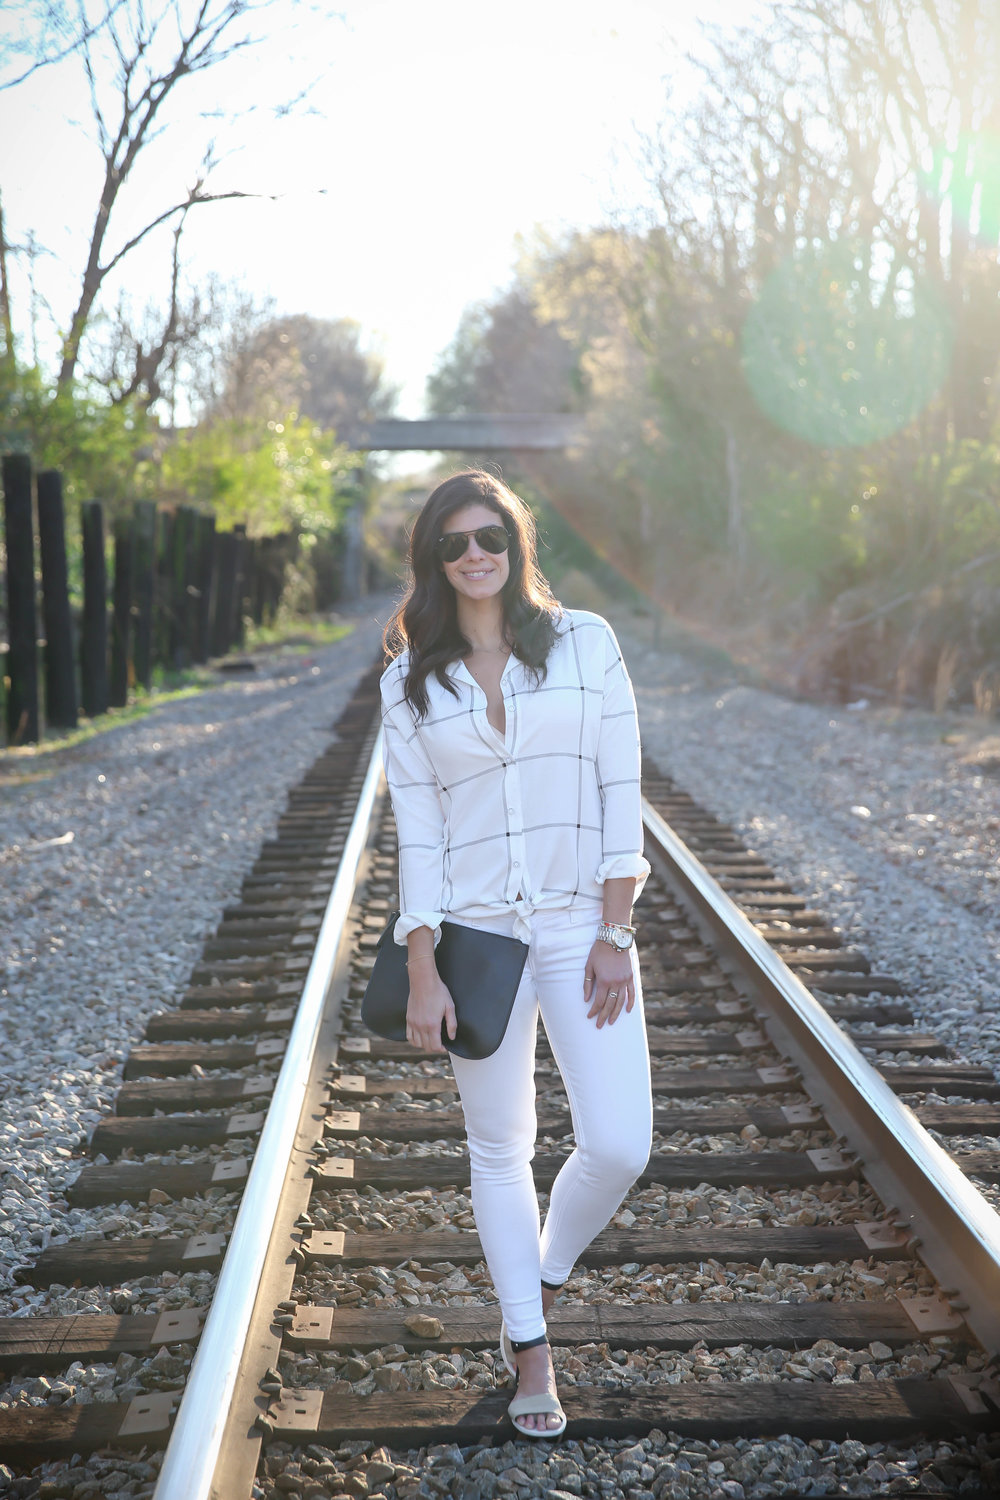 black-white-wide-grid-print-top-lauren-schwaiger-style-blog.jpg